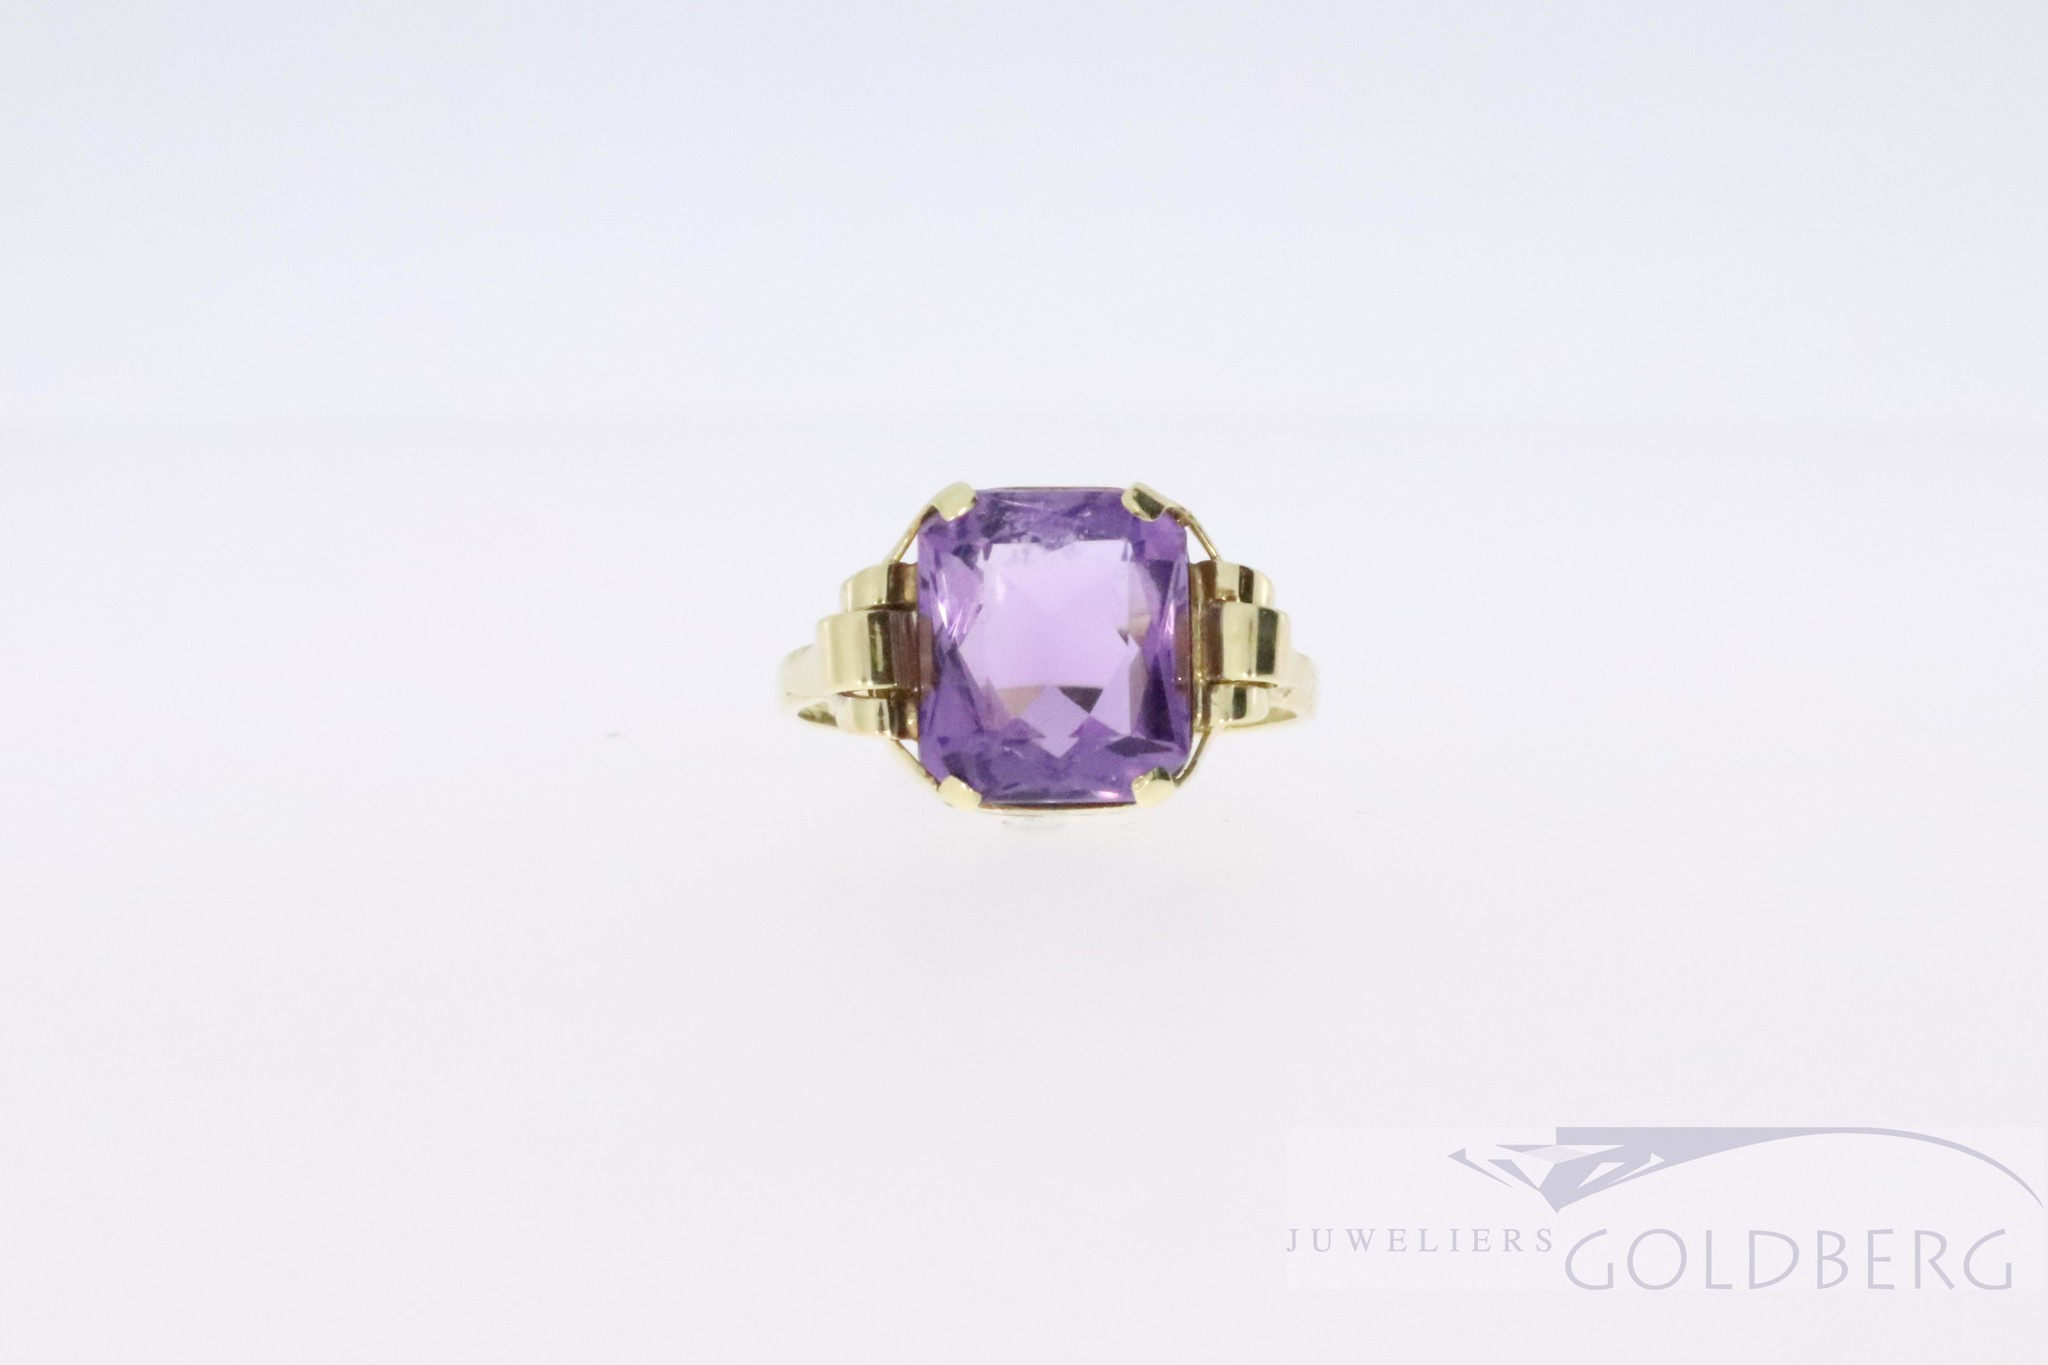 Beautiful antique 14 carat gold ring with Amethyst from the '50